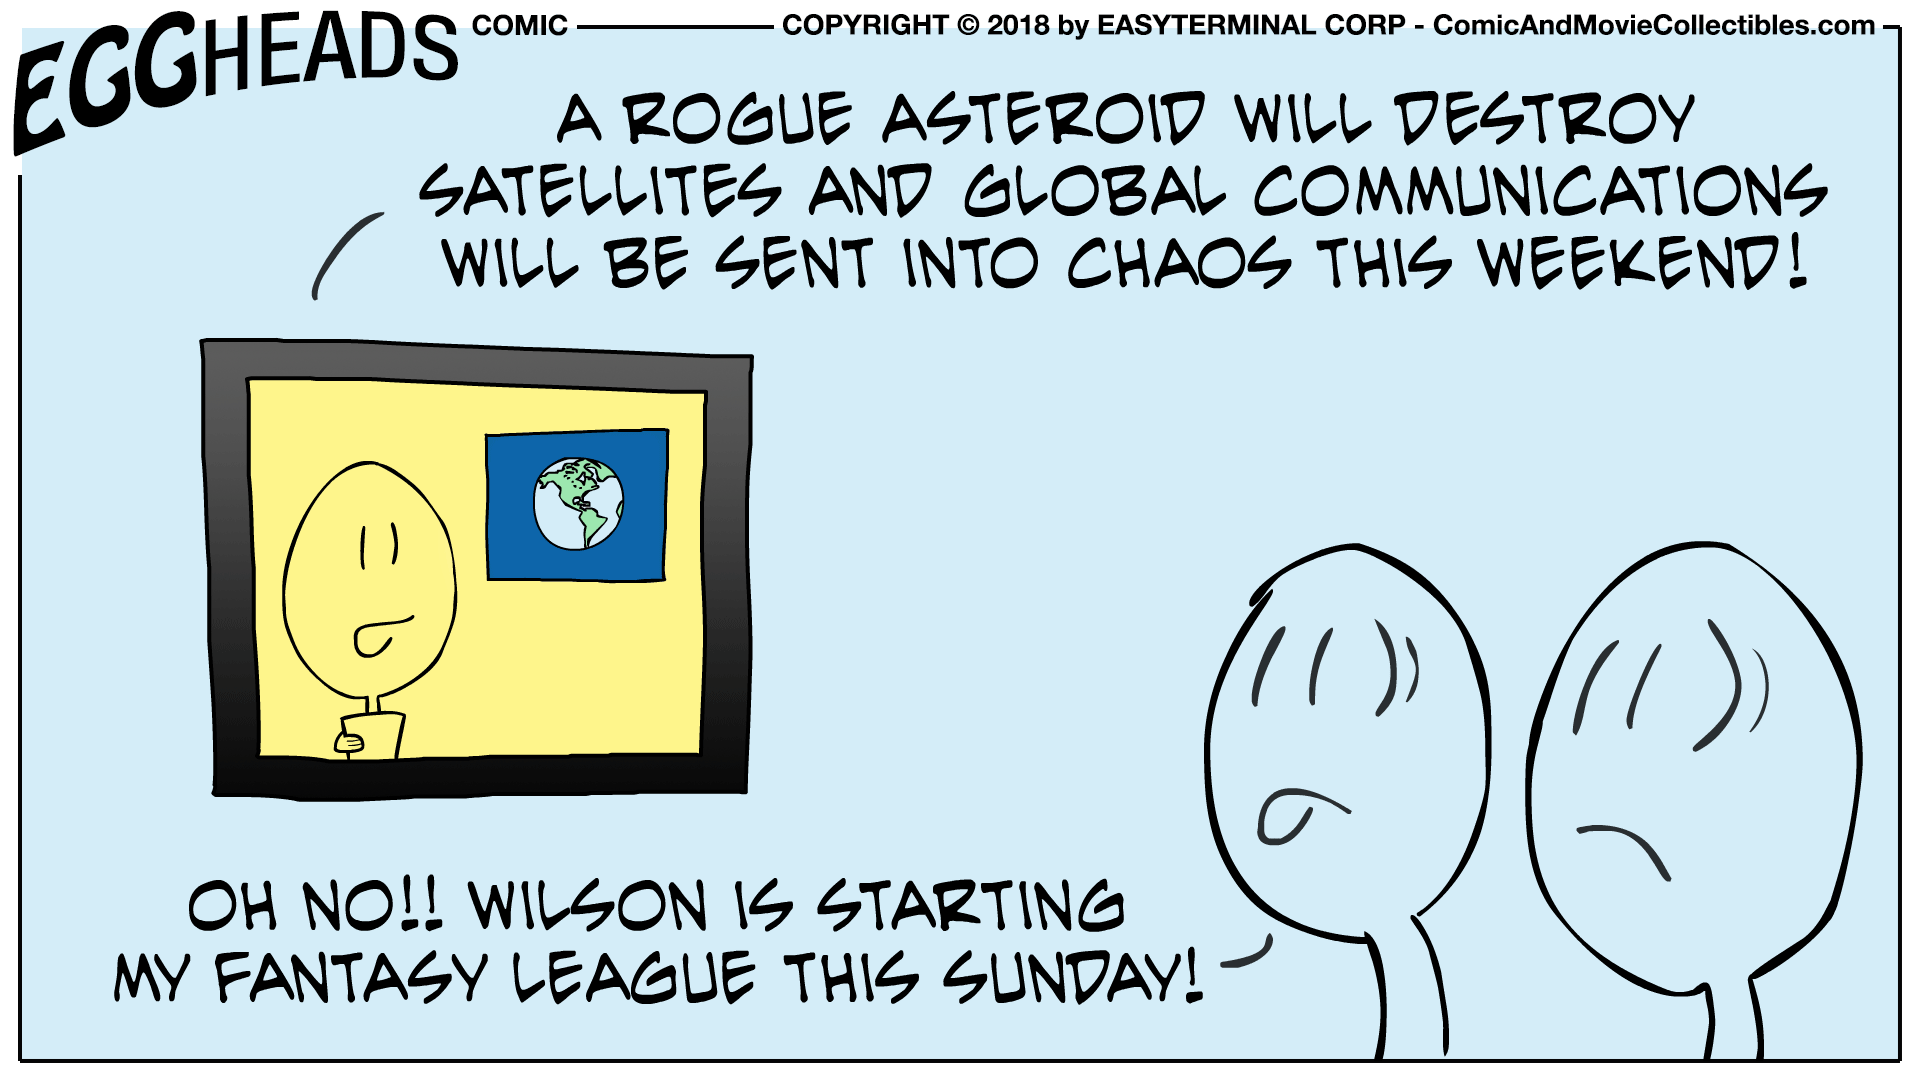 Webcomic Eggheads Comic Strip 027 Rogue Asteroid